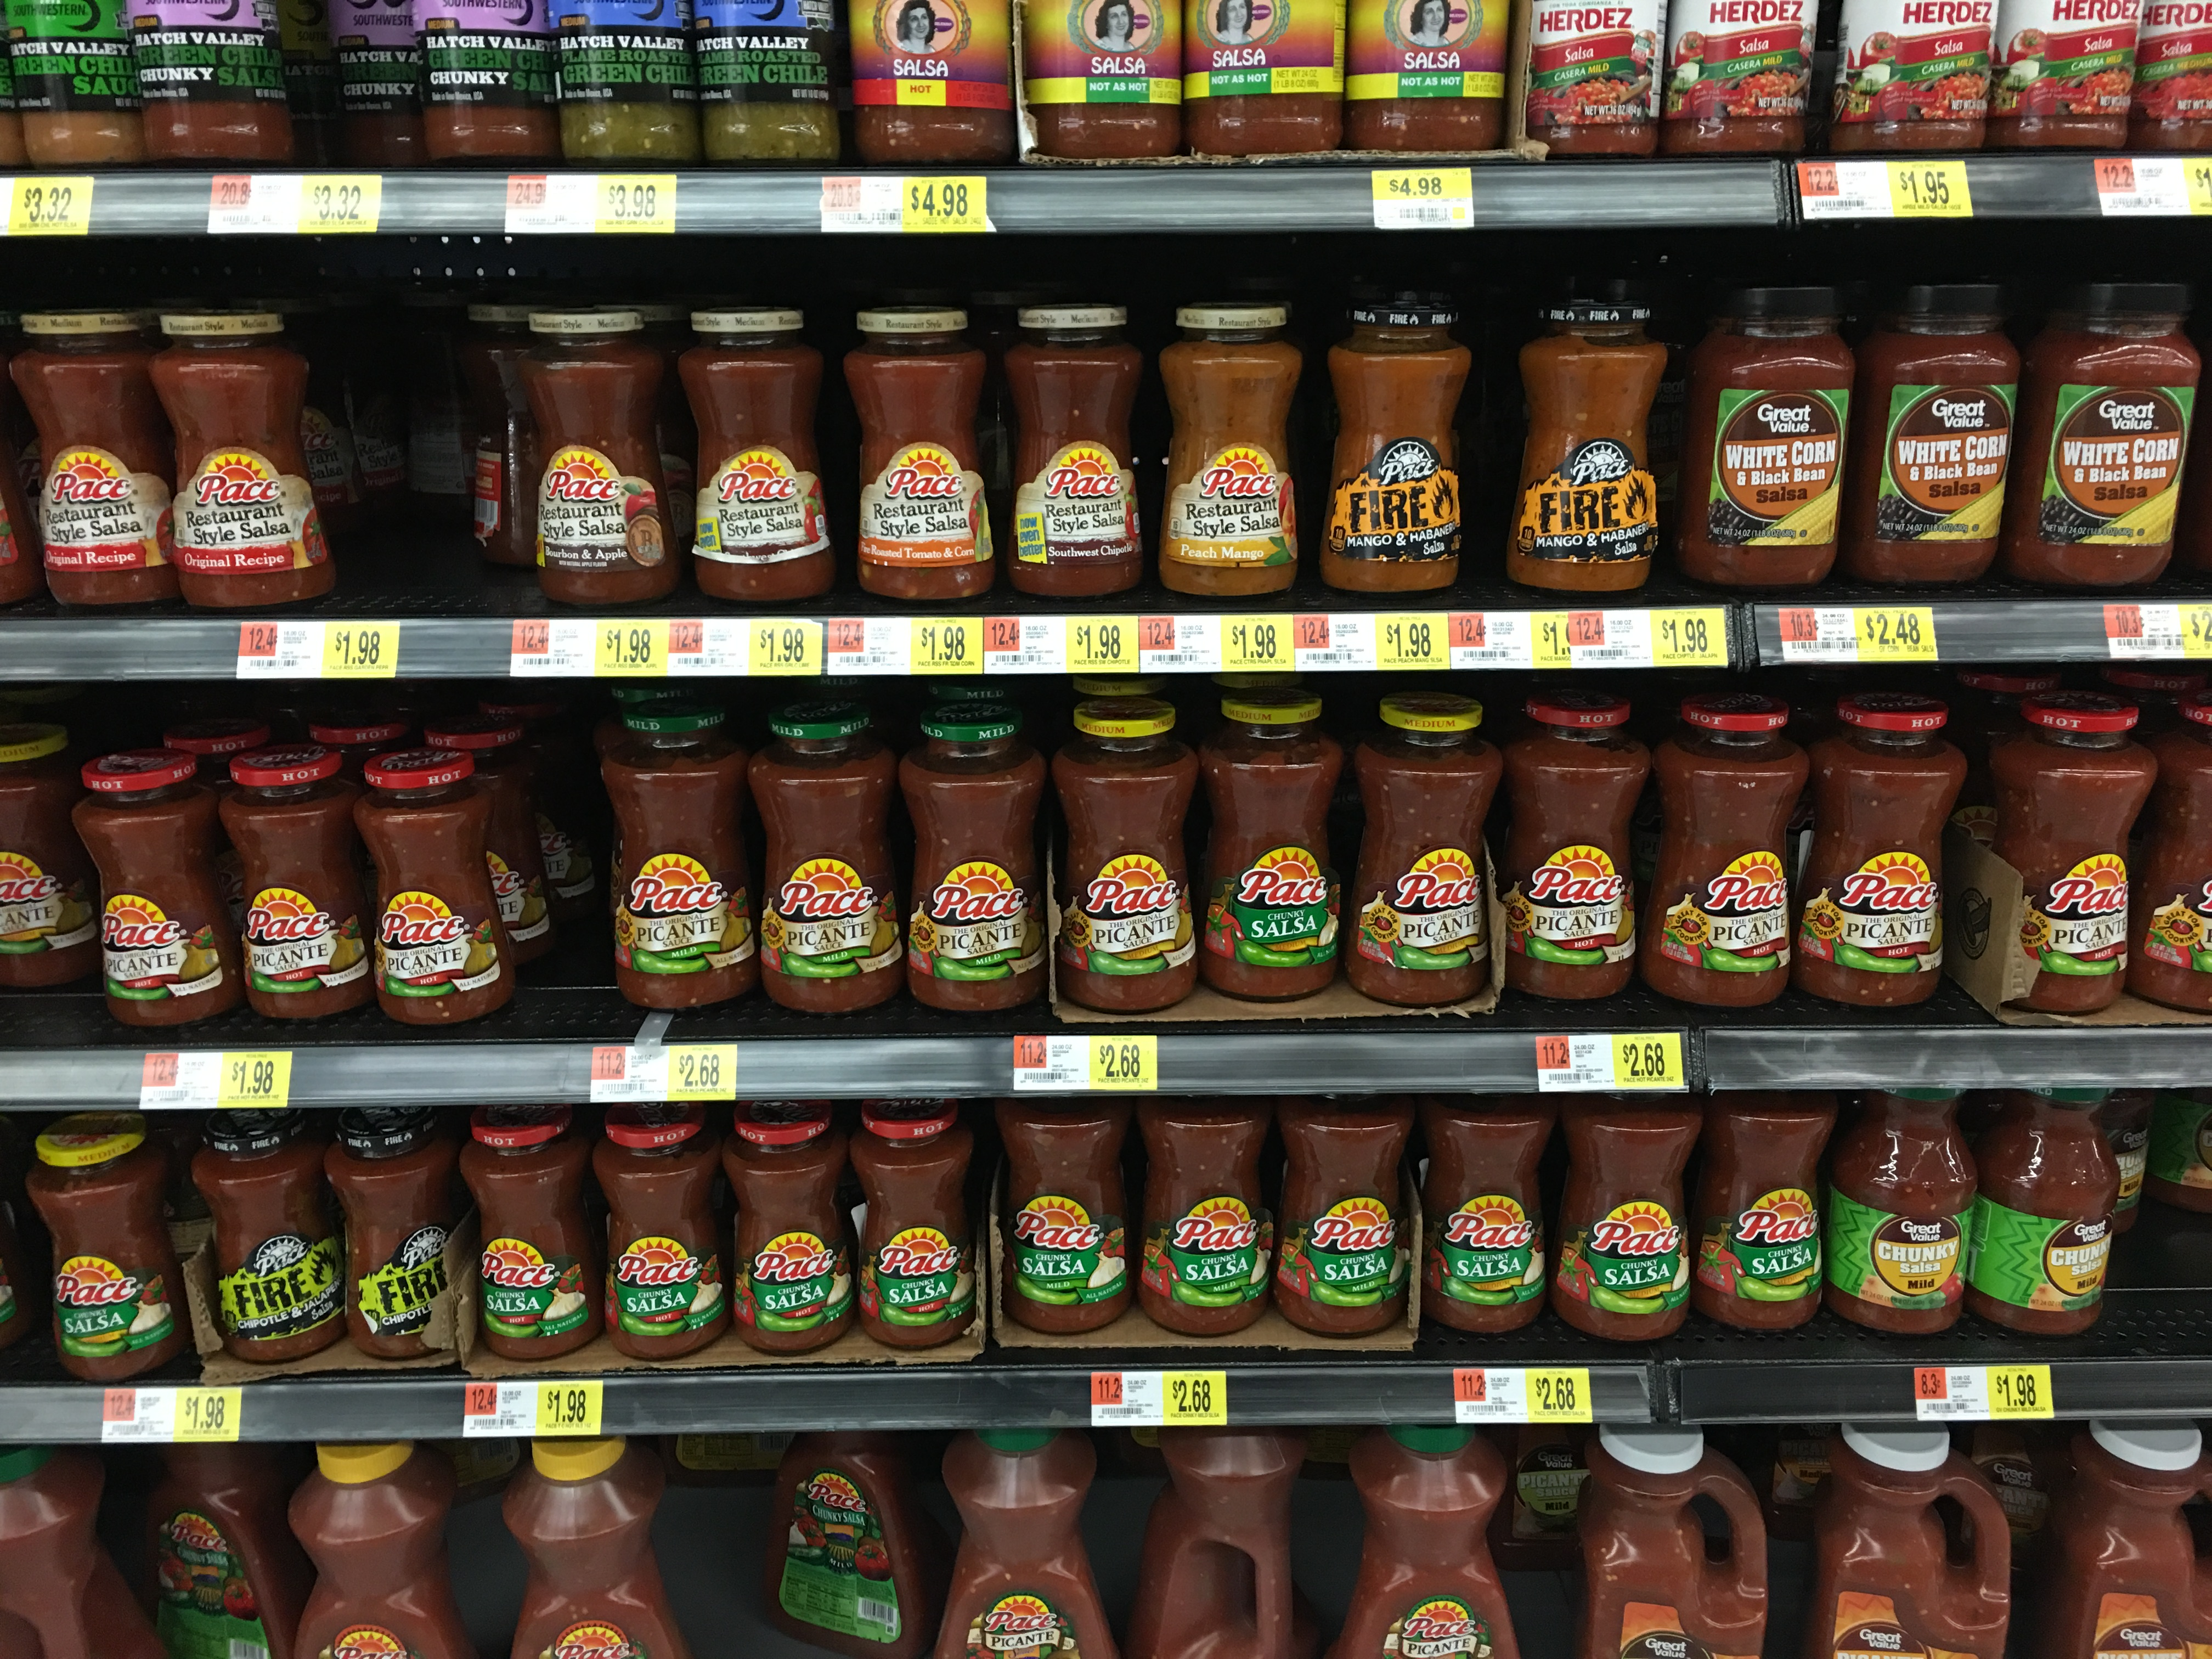 Pace Picante sauce at Walmart